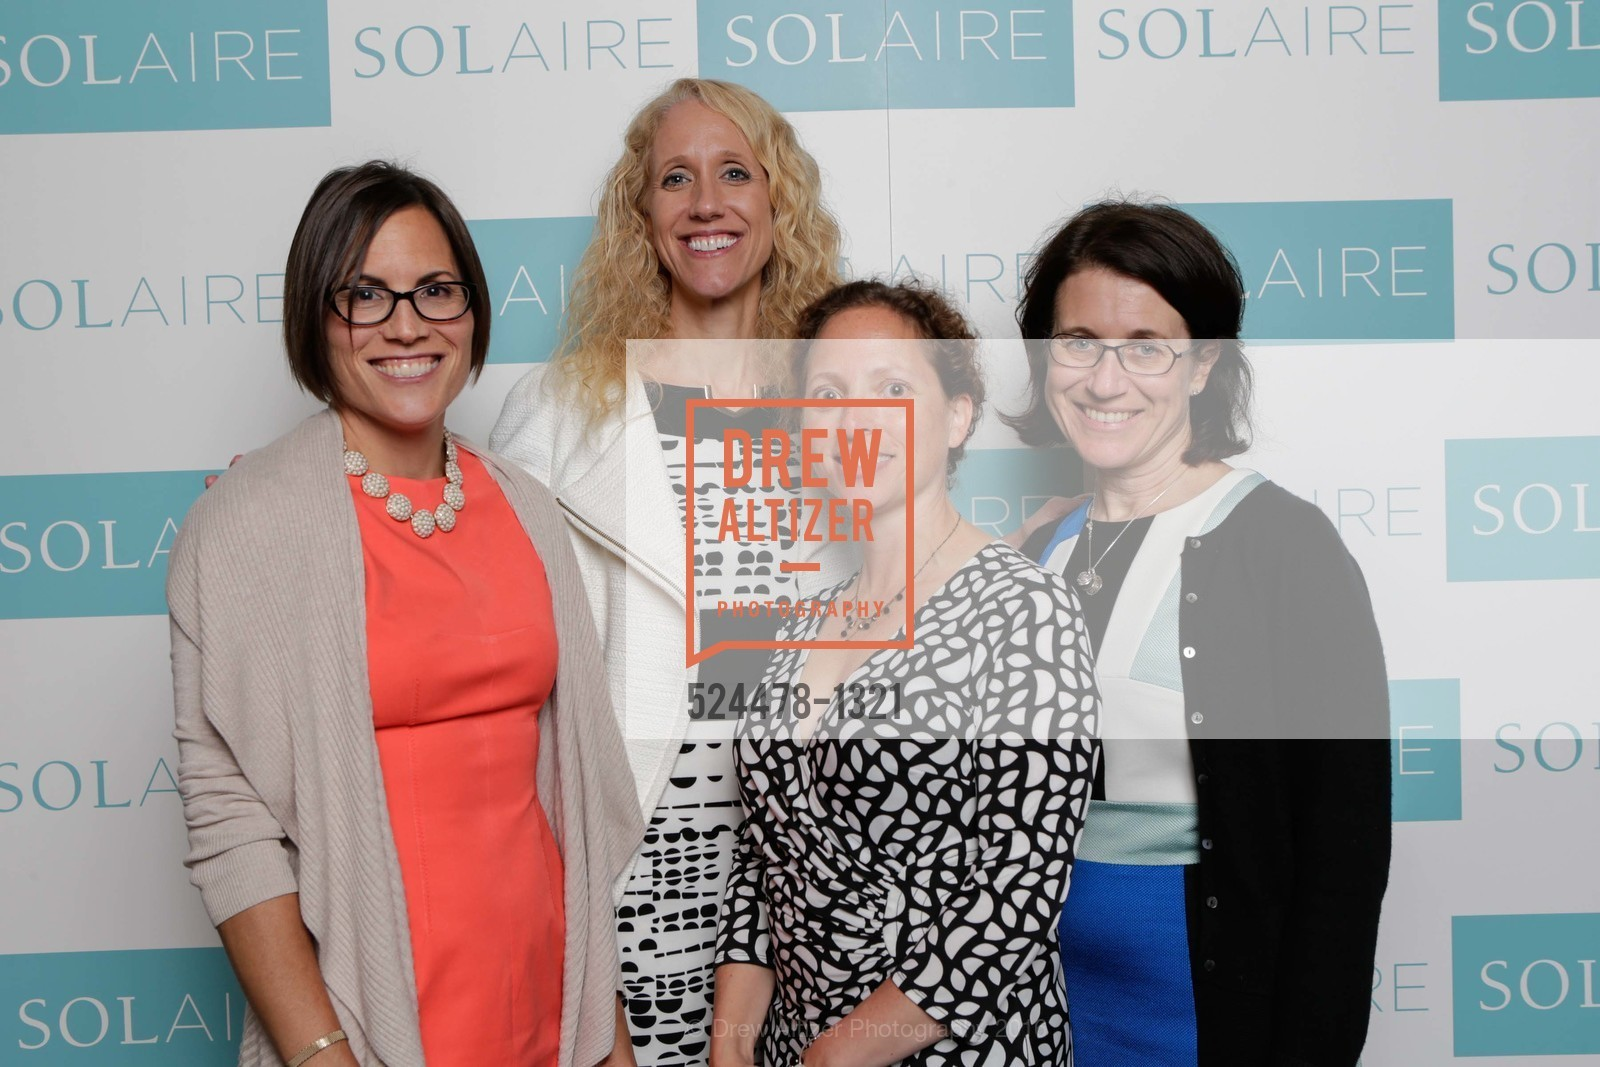 Beth Weingarten, Ari Powell, Sarah Postyn, Solaire Grand Opening Party, Solaire. 299 Fremont Street, SF, CA 94105, July 27th, 2016